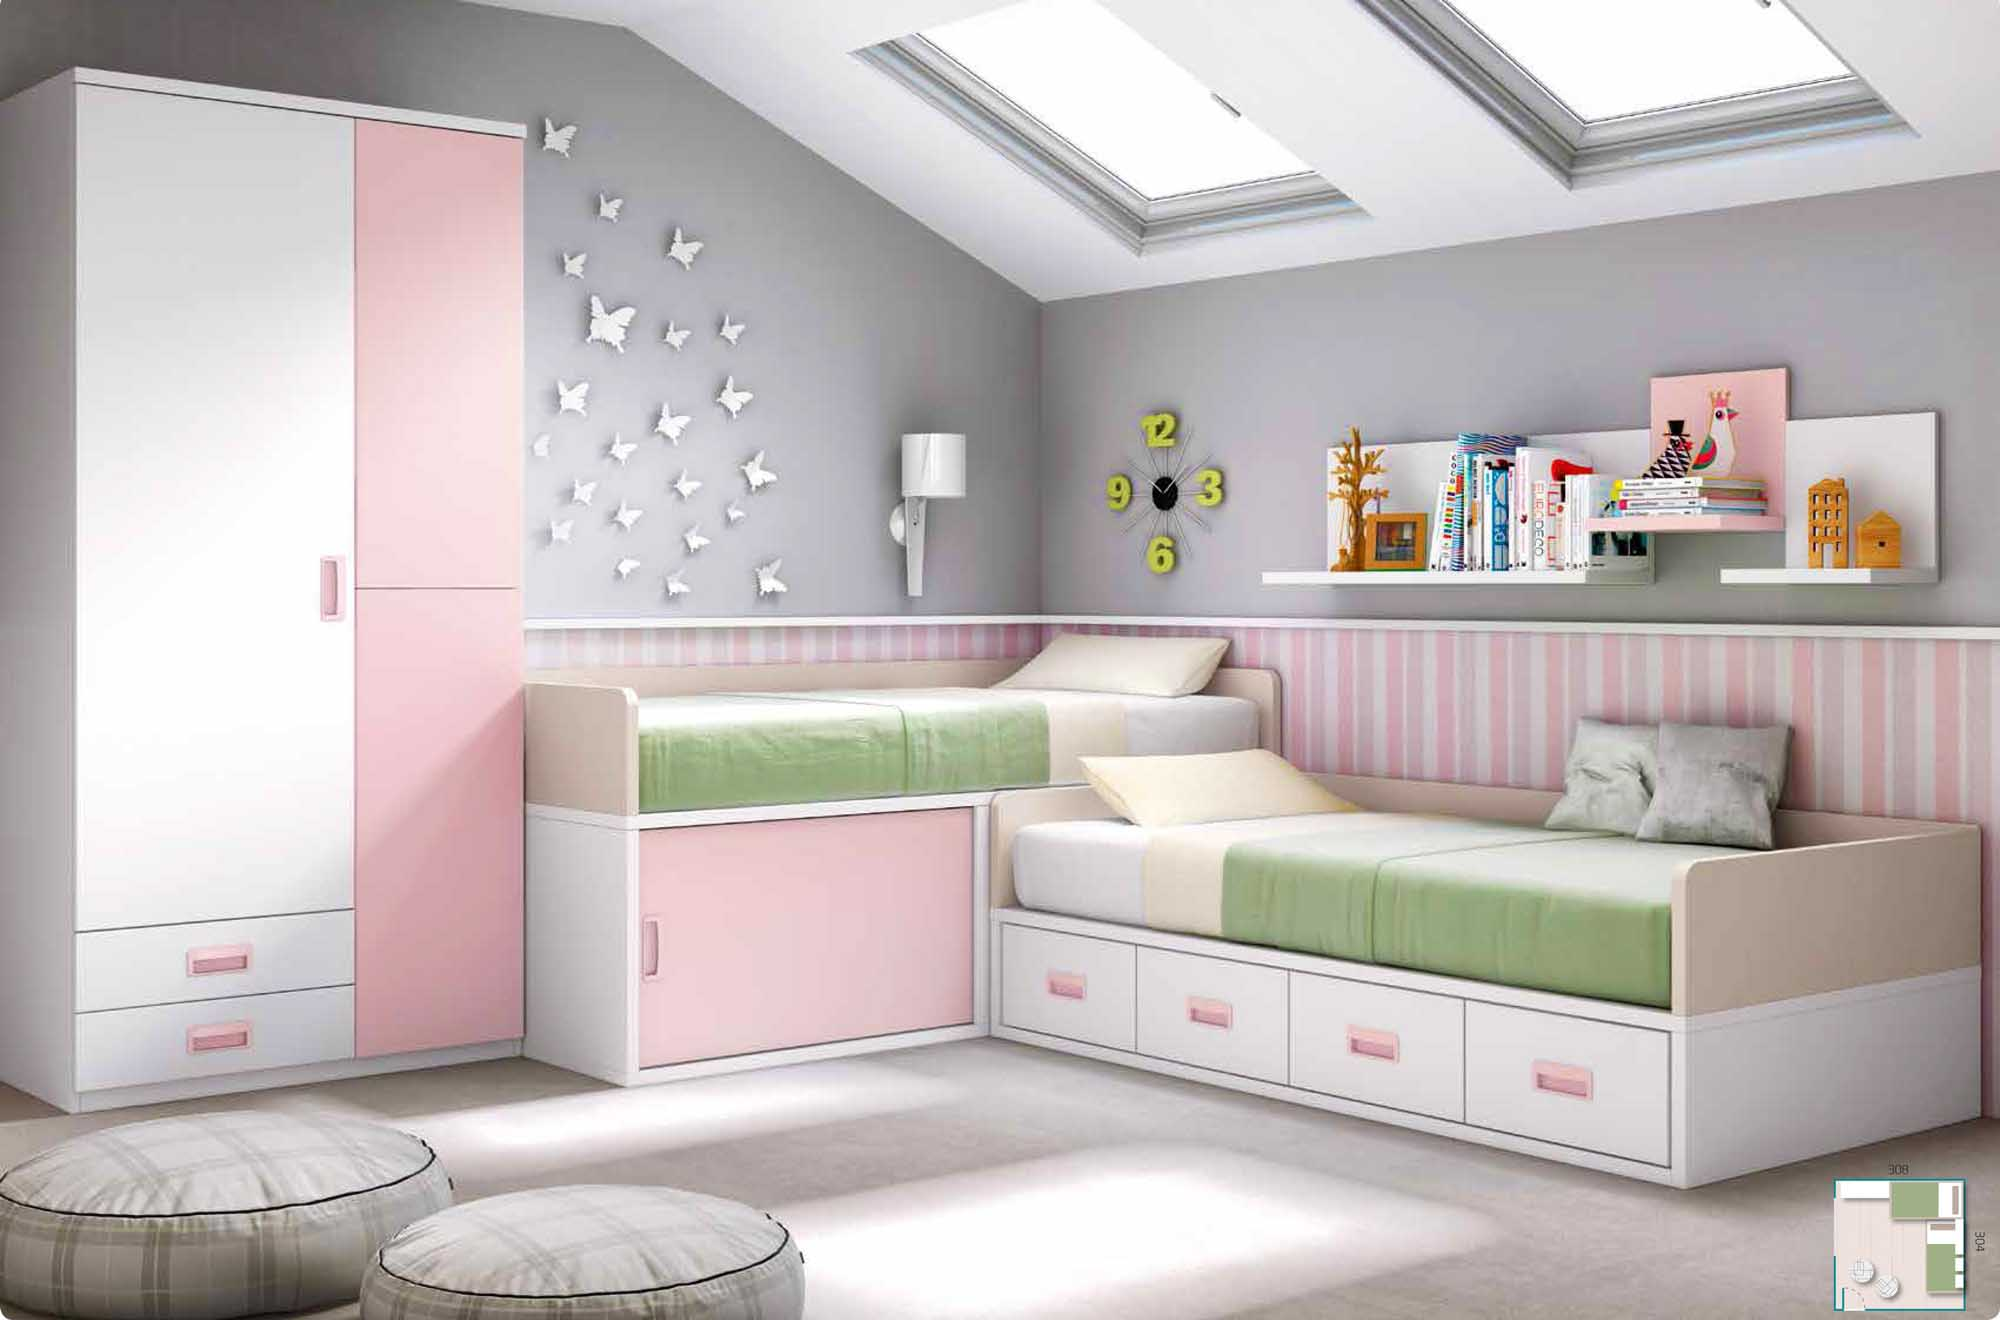 chambre fillette personnaliser pour 2 fille glicerio. Black Bedroom Furniture Sets. Home Design Ideas